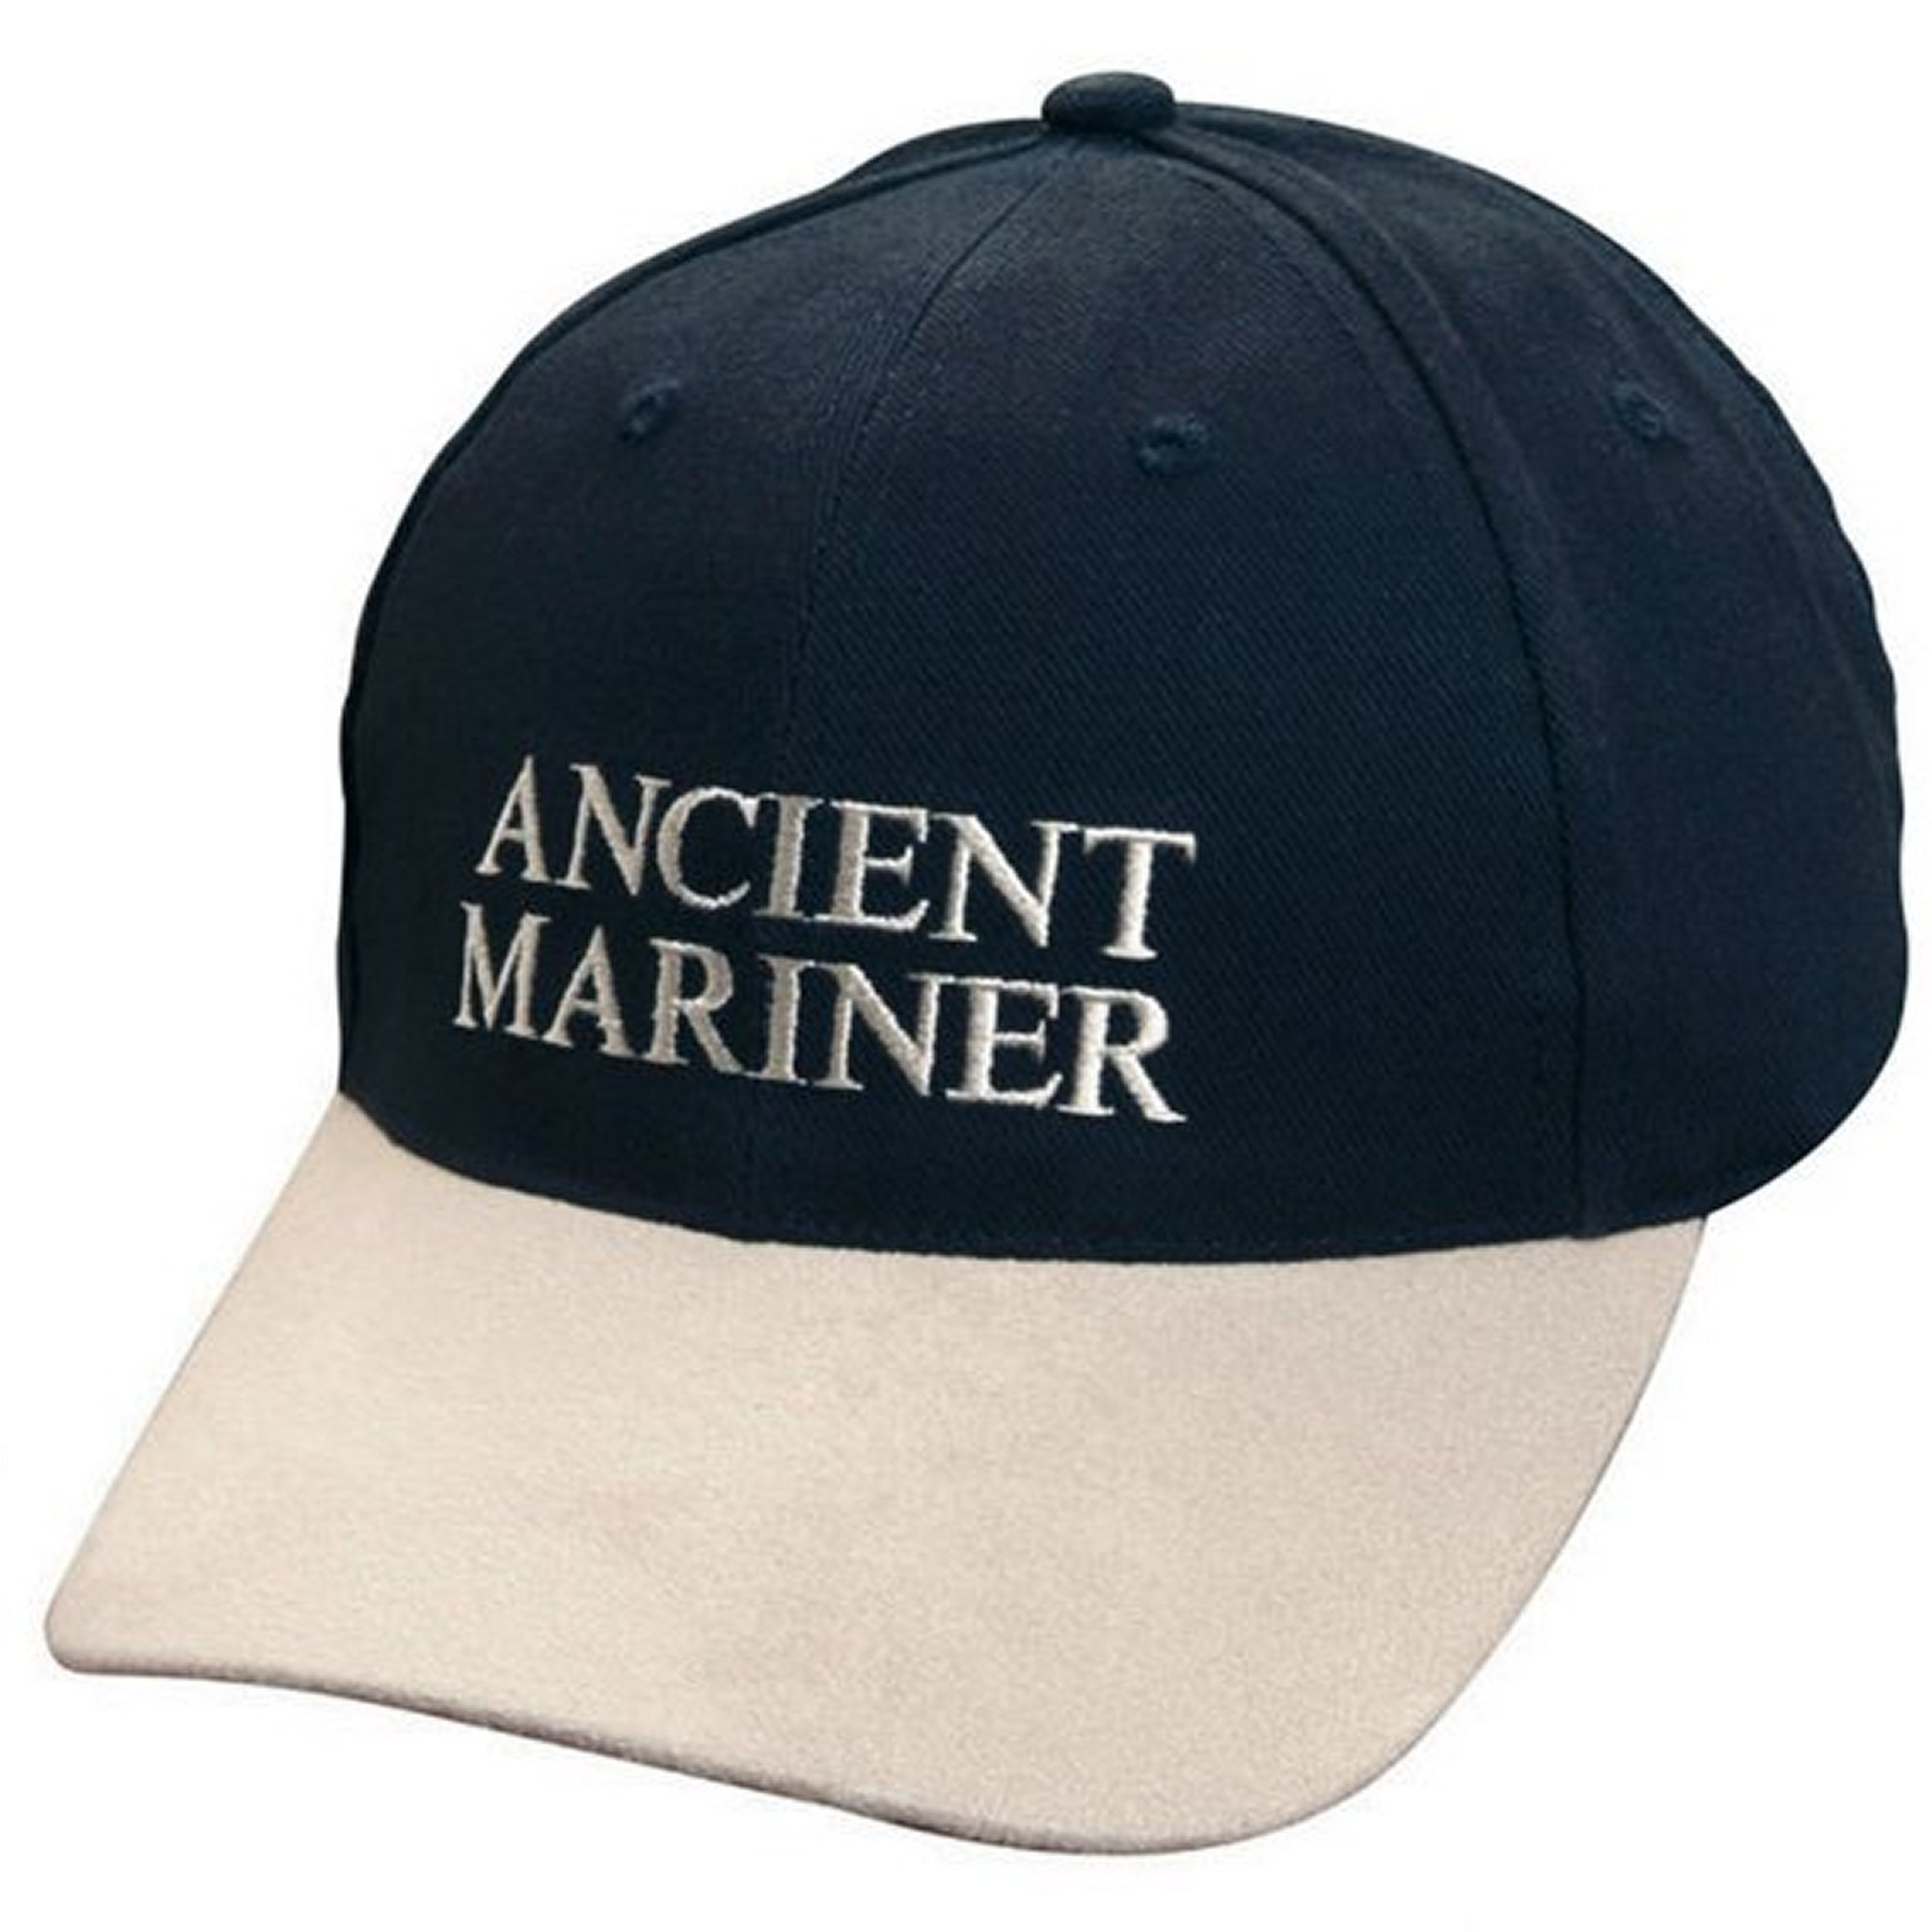 Ancient Mariner Hat